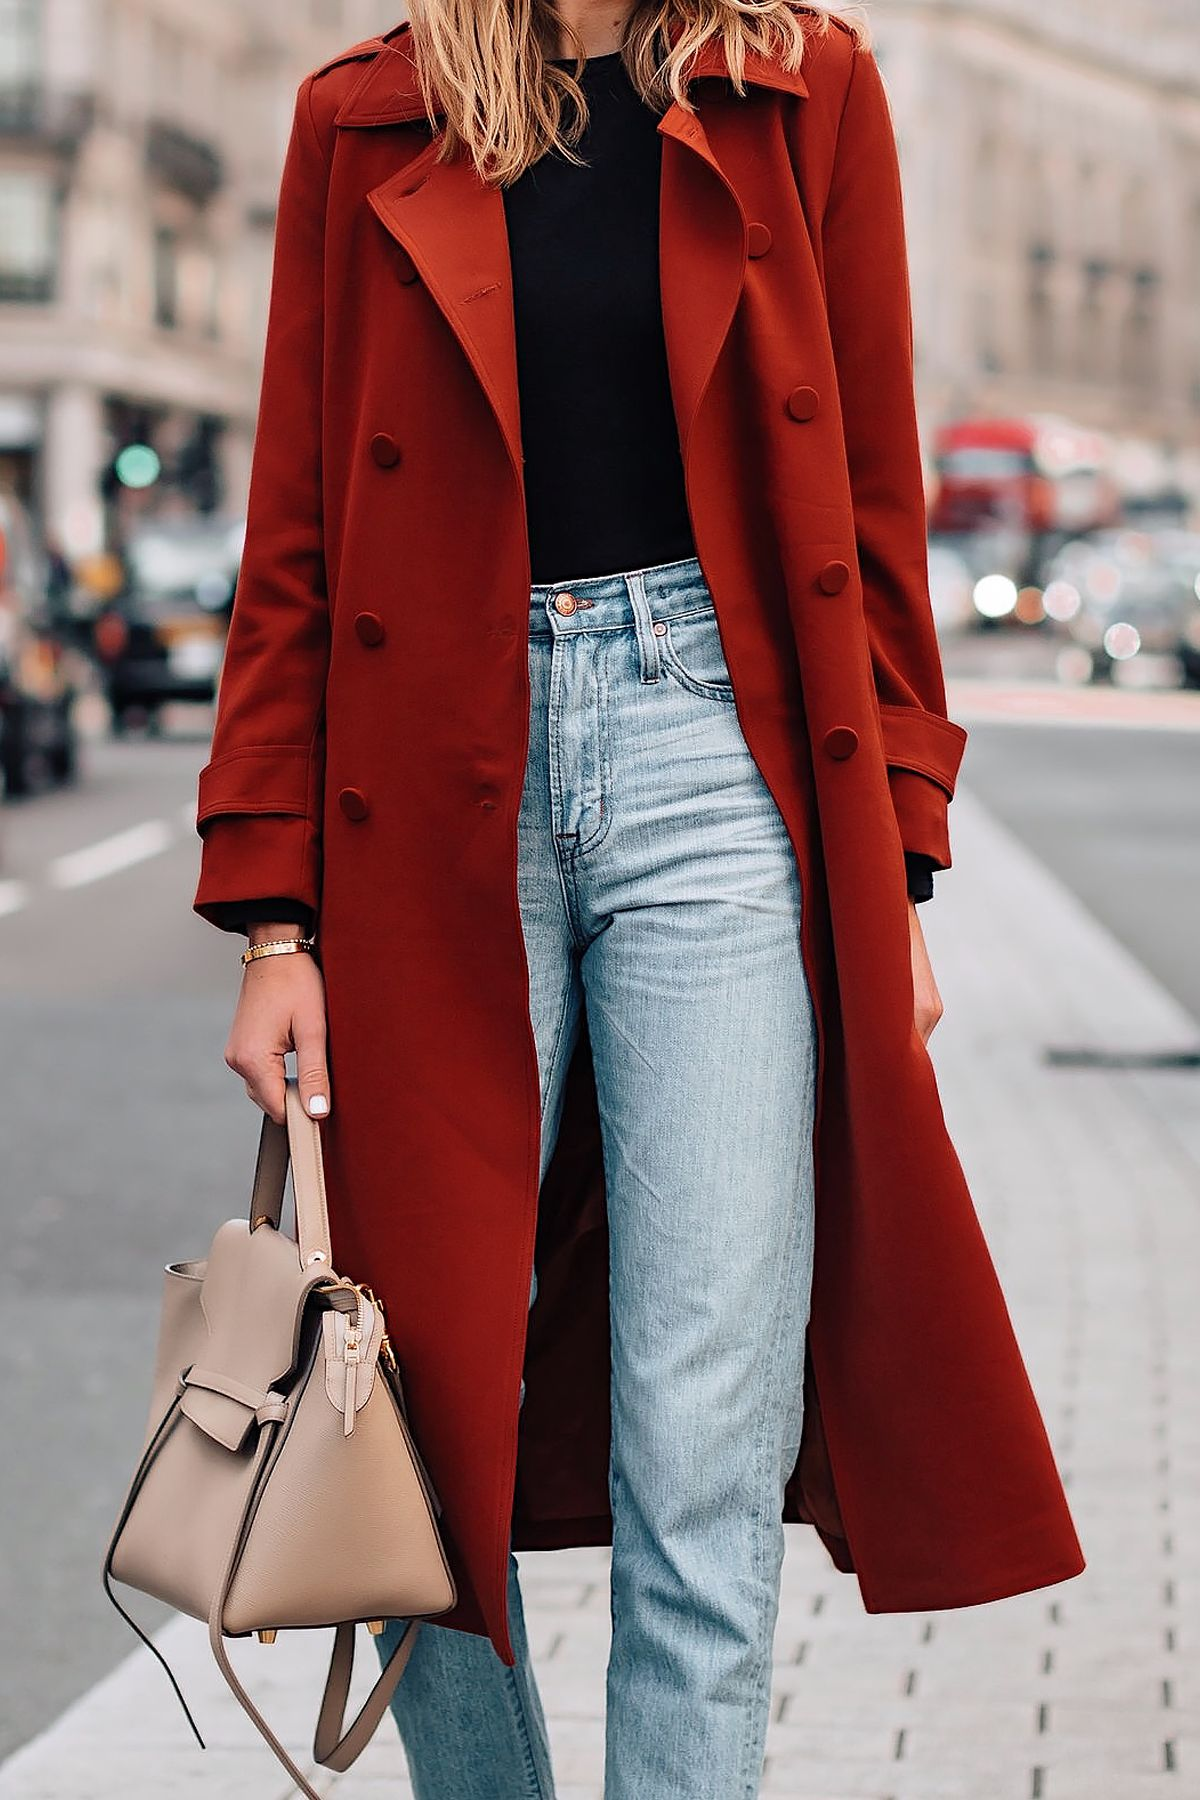 58efe2ef5b63 Woman Wearing Red Trench Coat Black Top Jeans Outfit Fashion Jackson San  Diego Fashion Blogger London Street Style